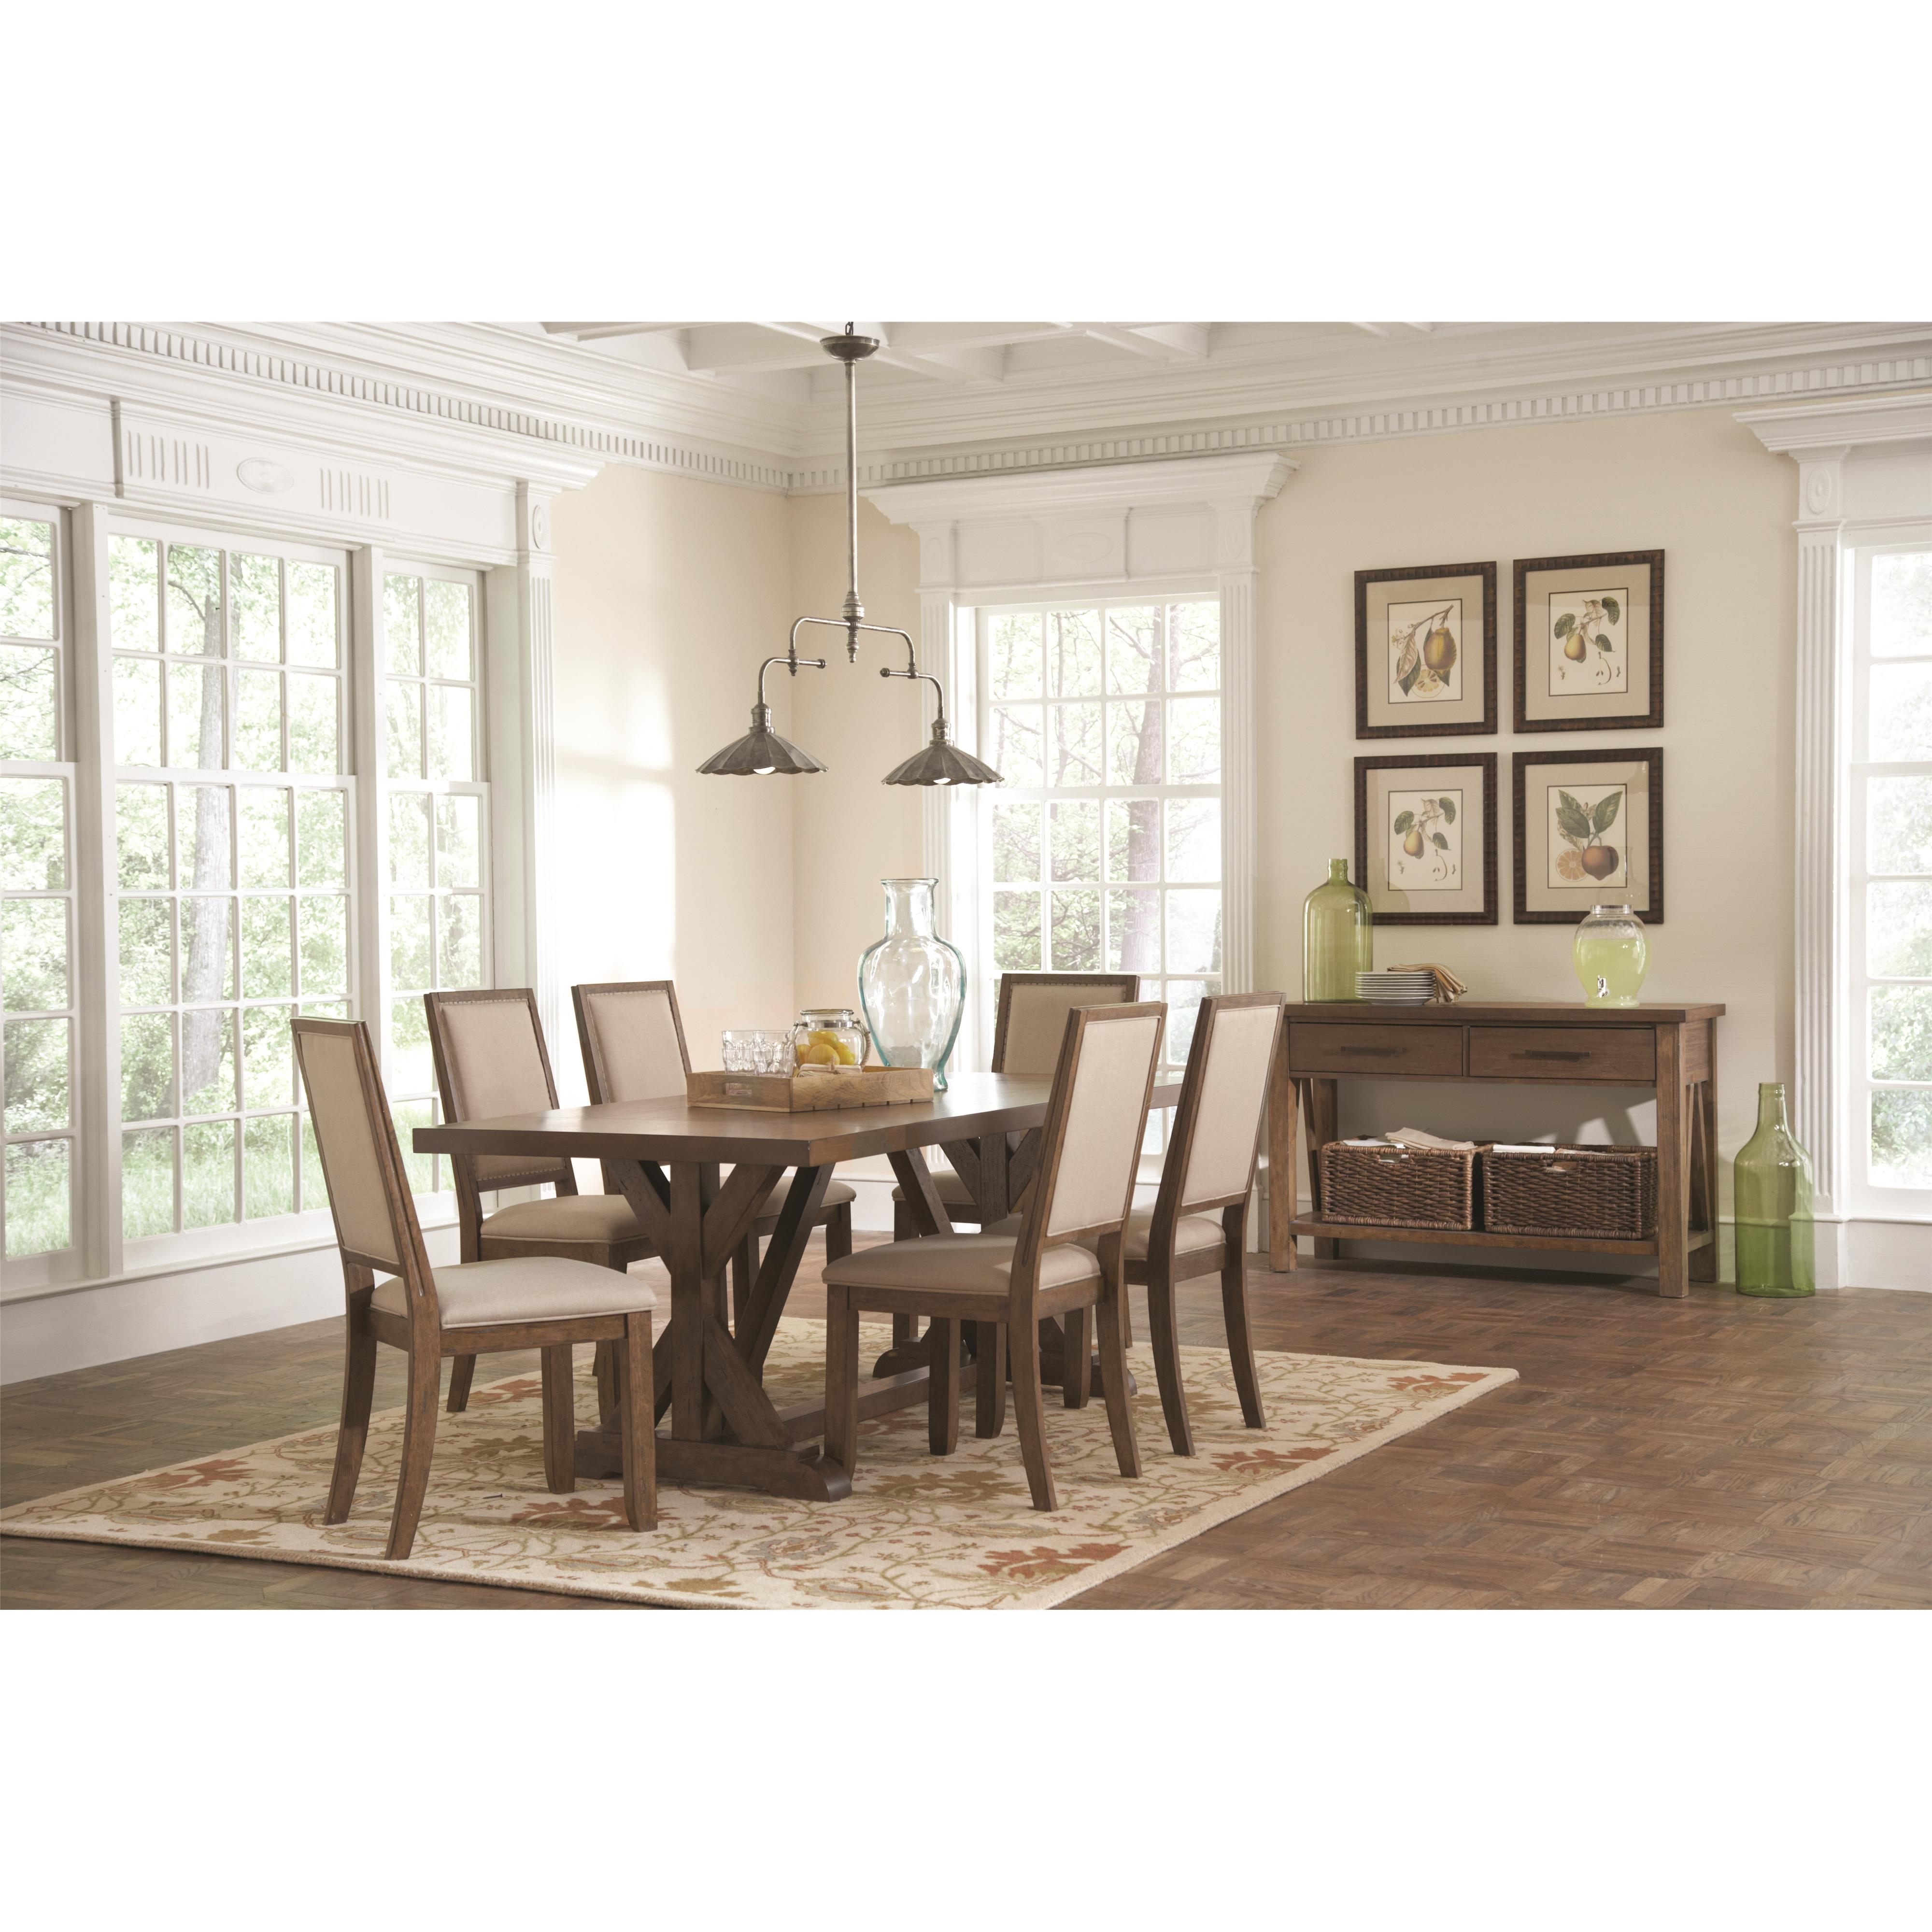 Coaster Bridgeport Dining Room Group - Item Number: 105520 Casual Dining Room Group 1